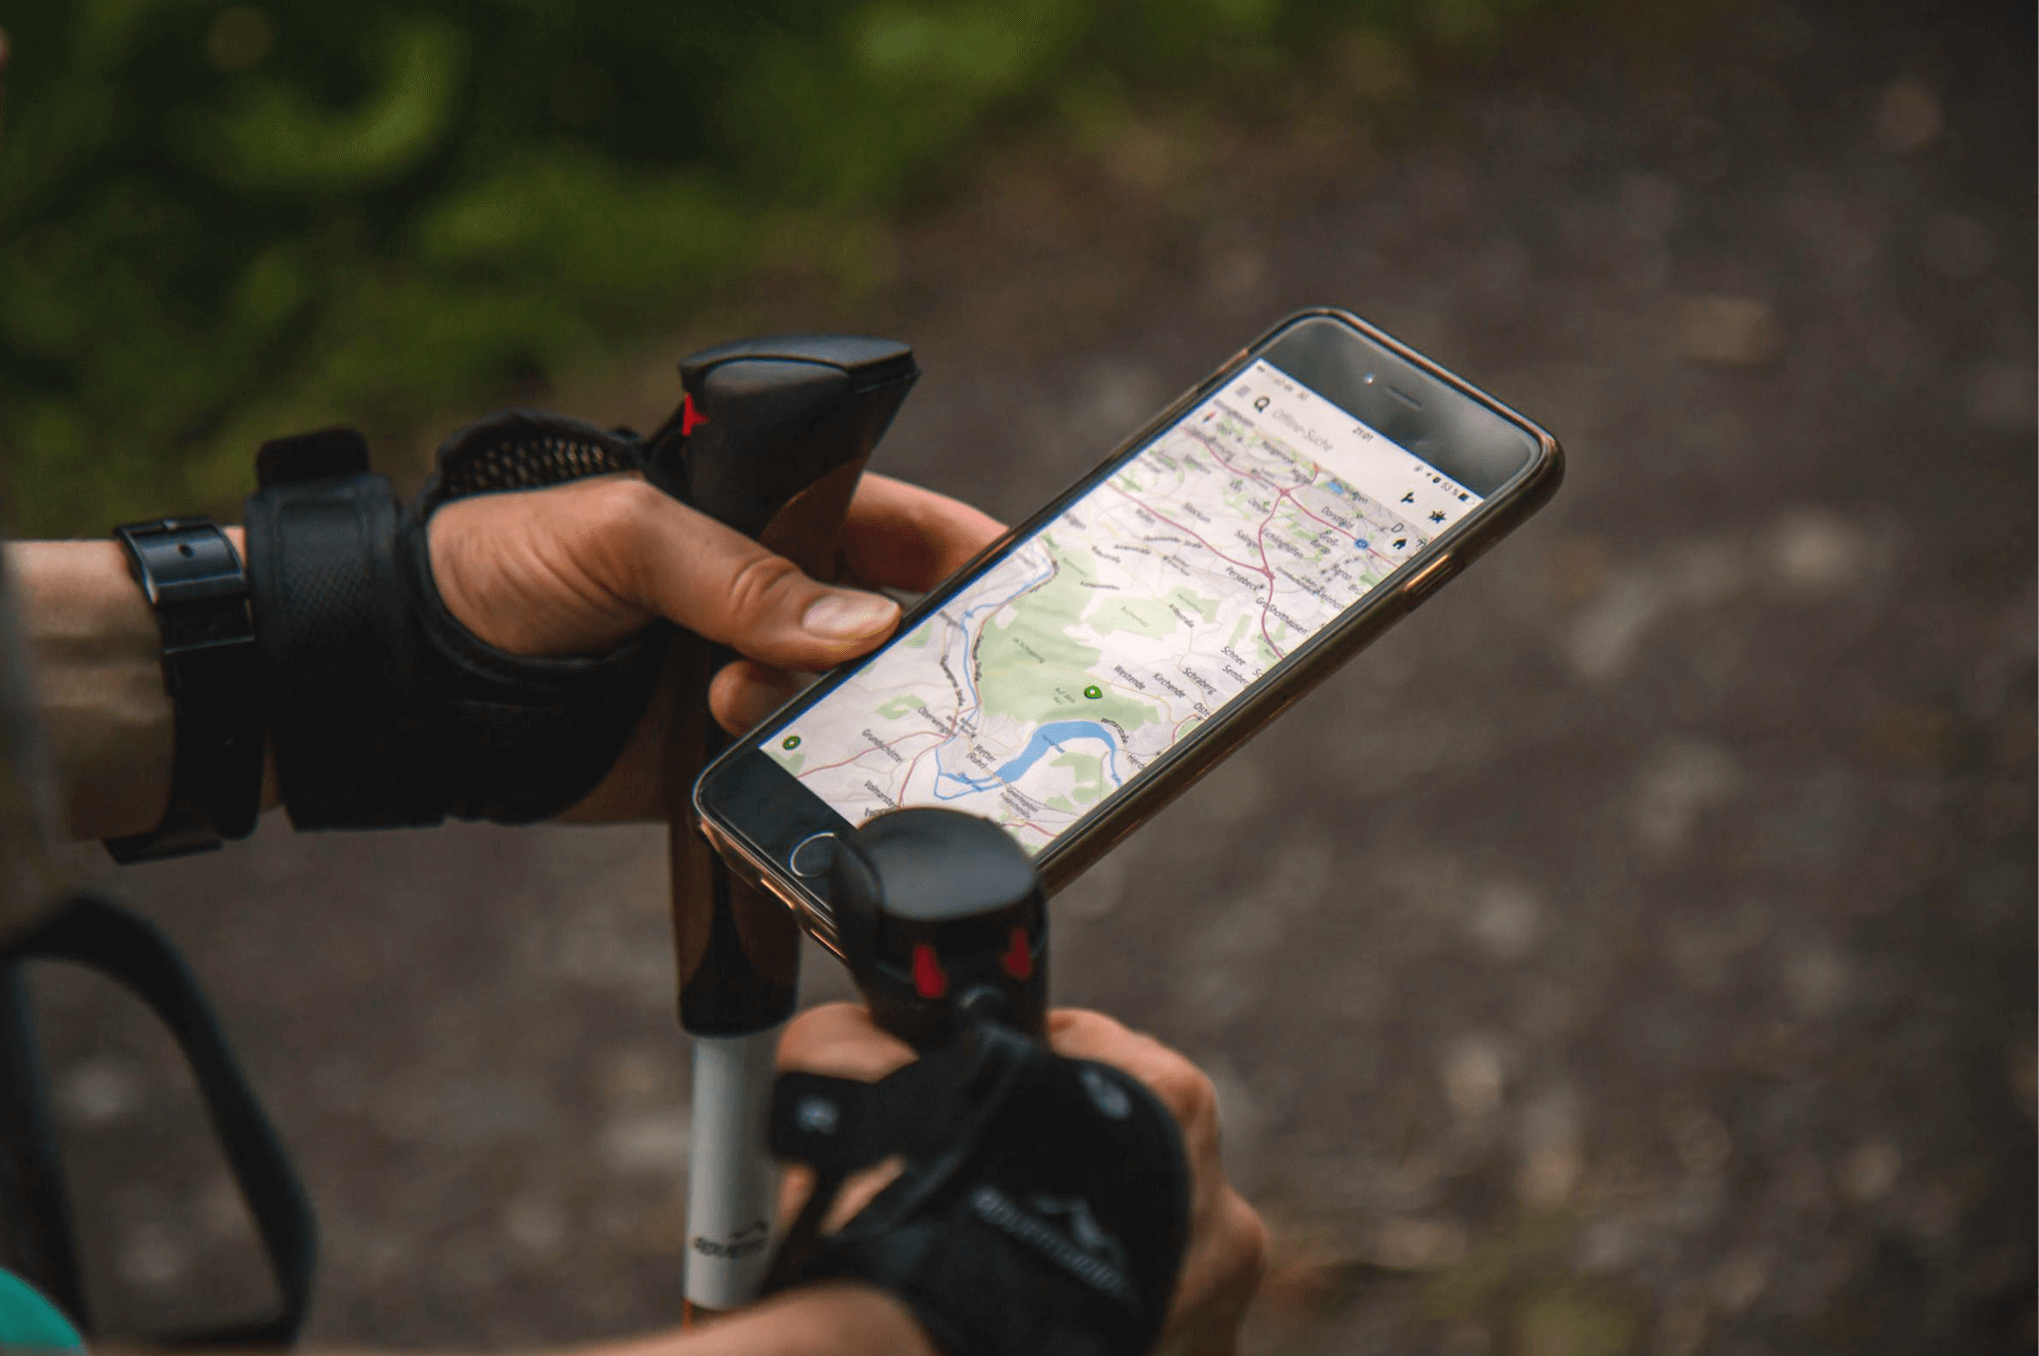 User engaging with iot app on their phone while hiking